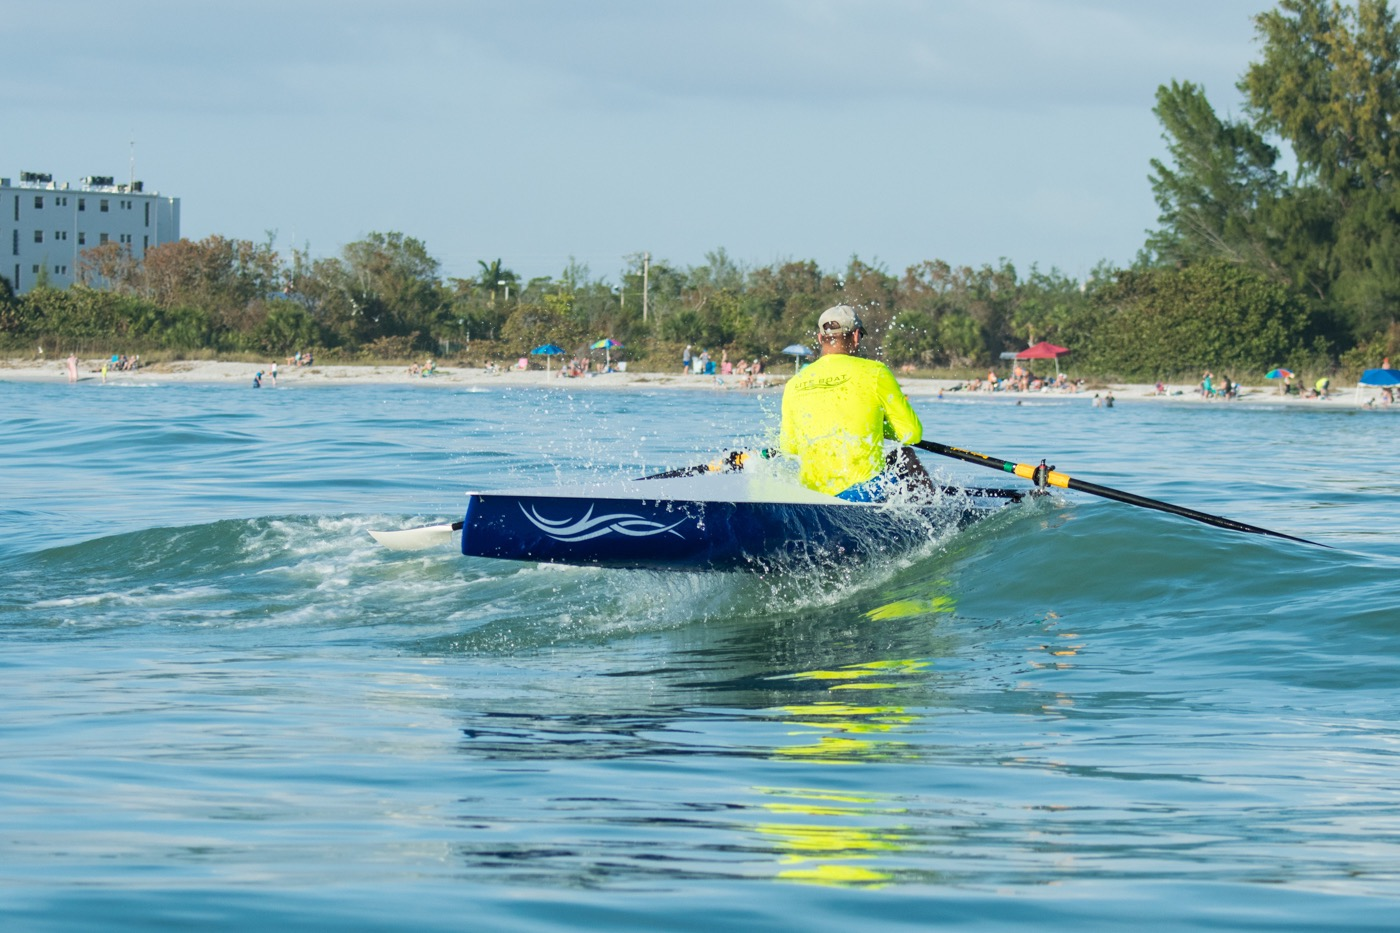 LiteRace 1X - Practicing my Coastal Rowing skills, more fun then I can describe!